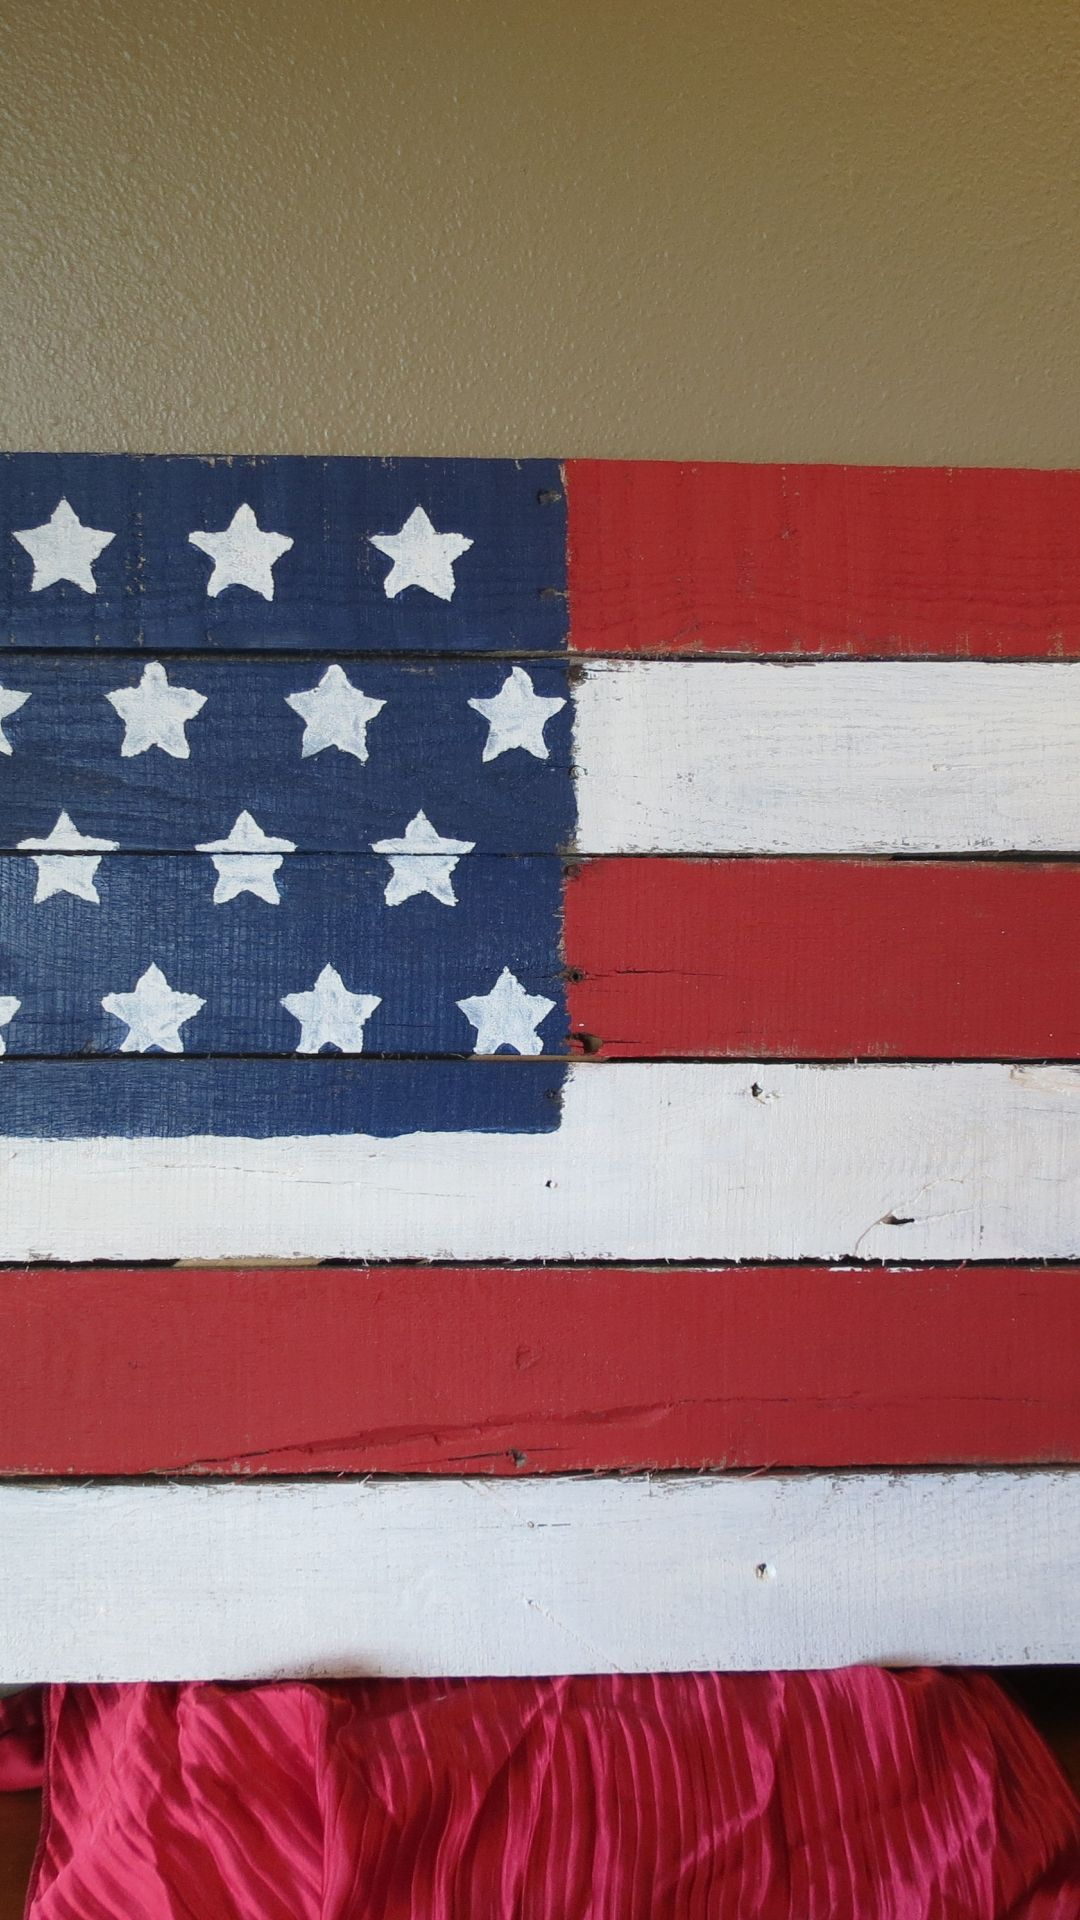 American Flag Wallpaper Android In 2020 American Flag Wallpaper